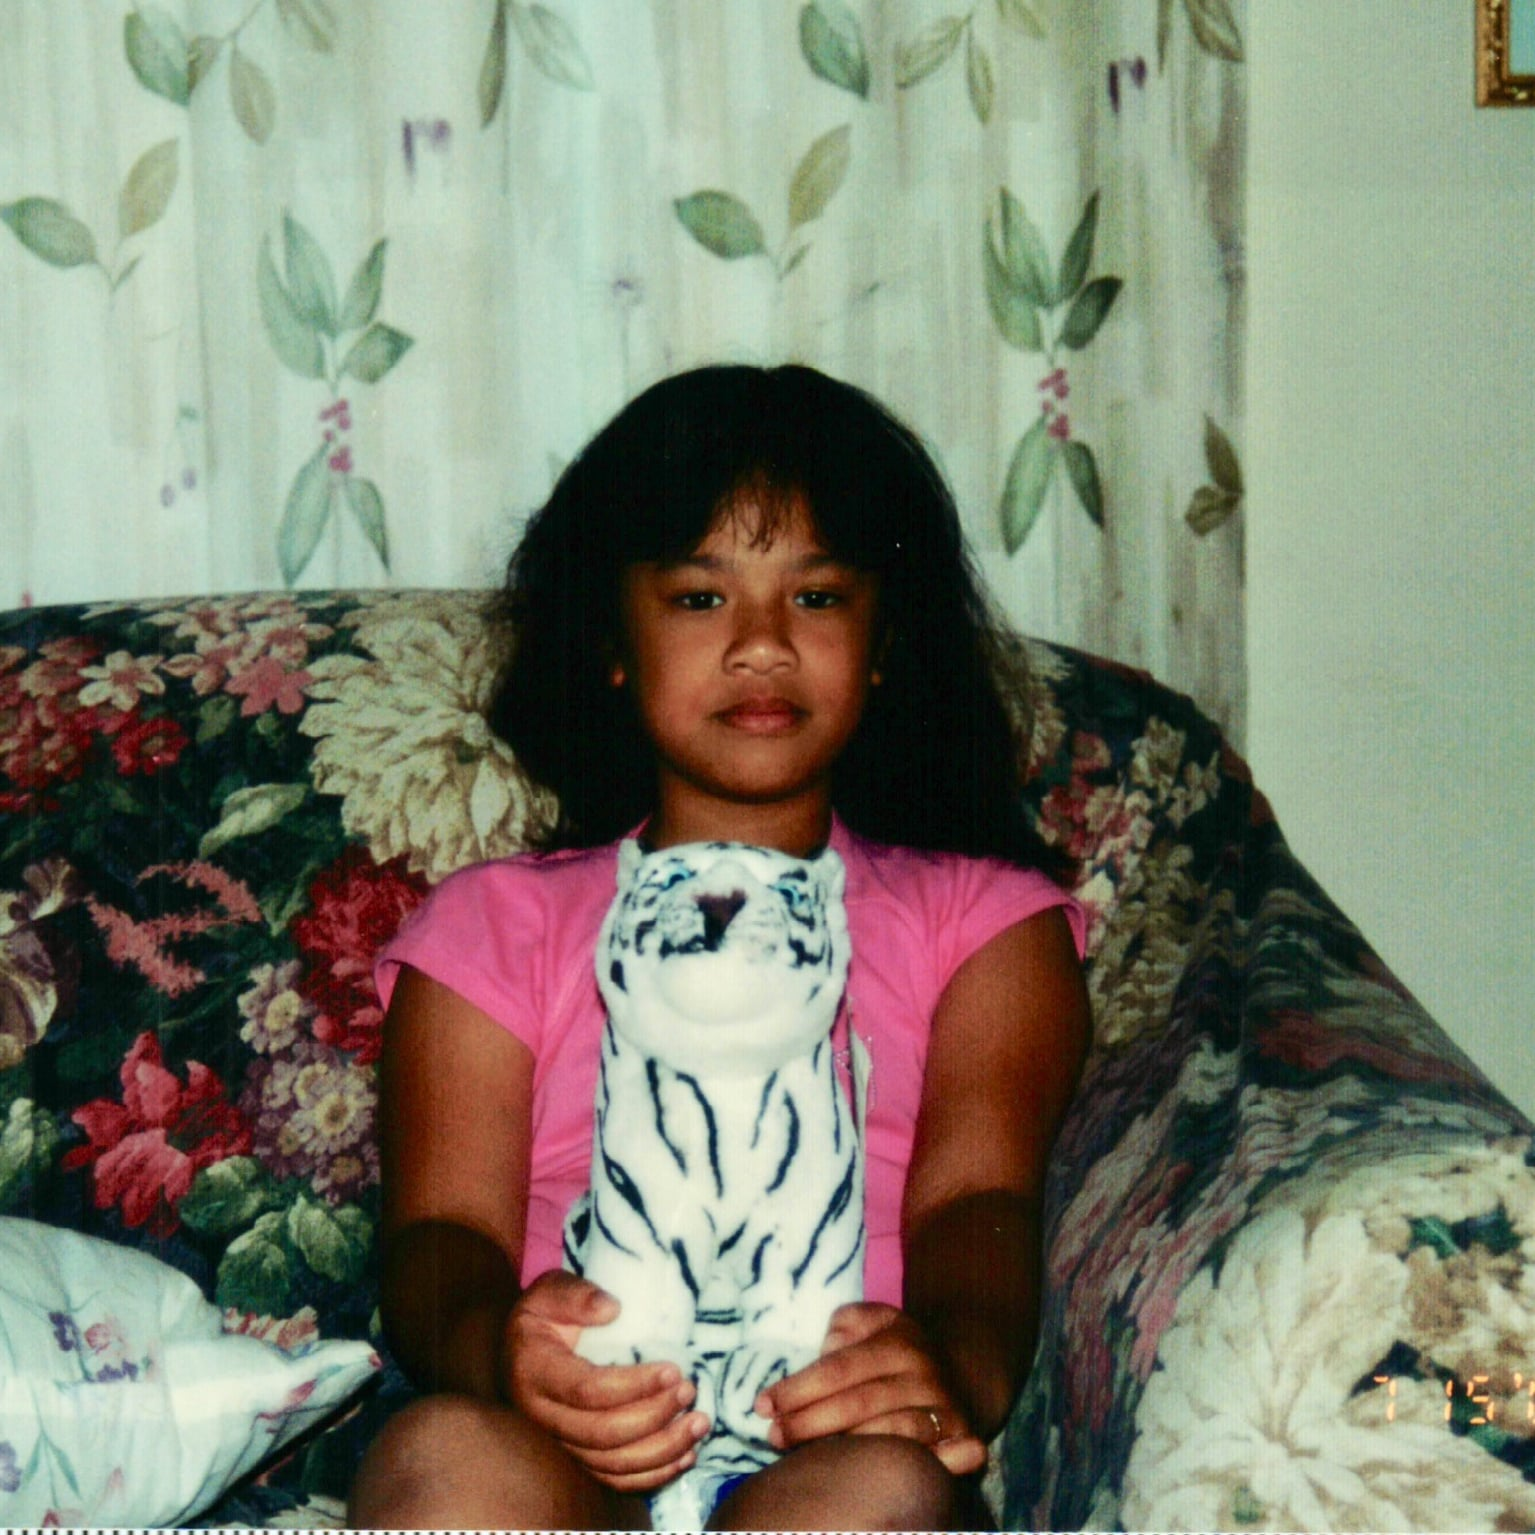 Assistant Beauty Editor, Jesa Calaor, as a pre-teen.